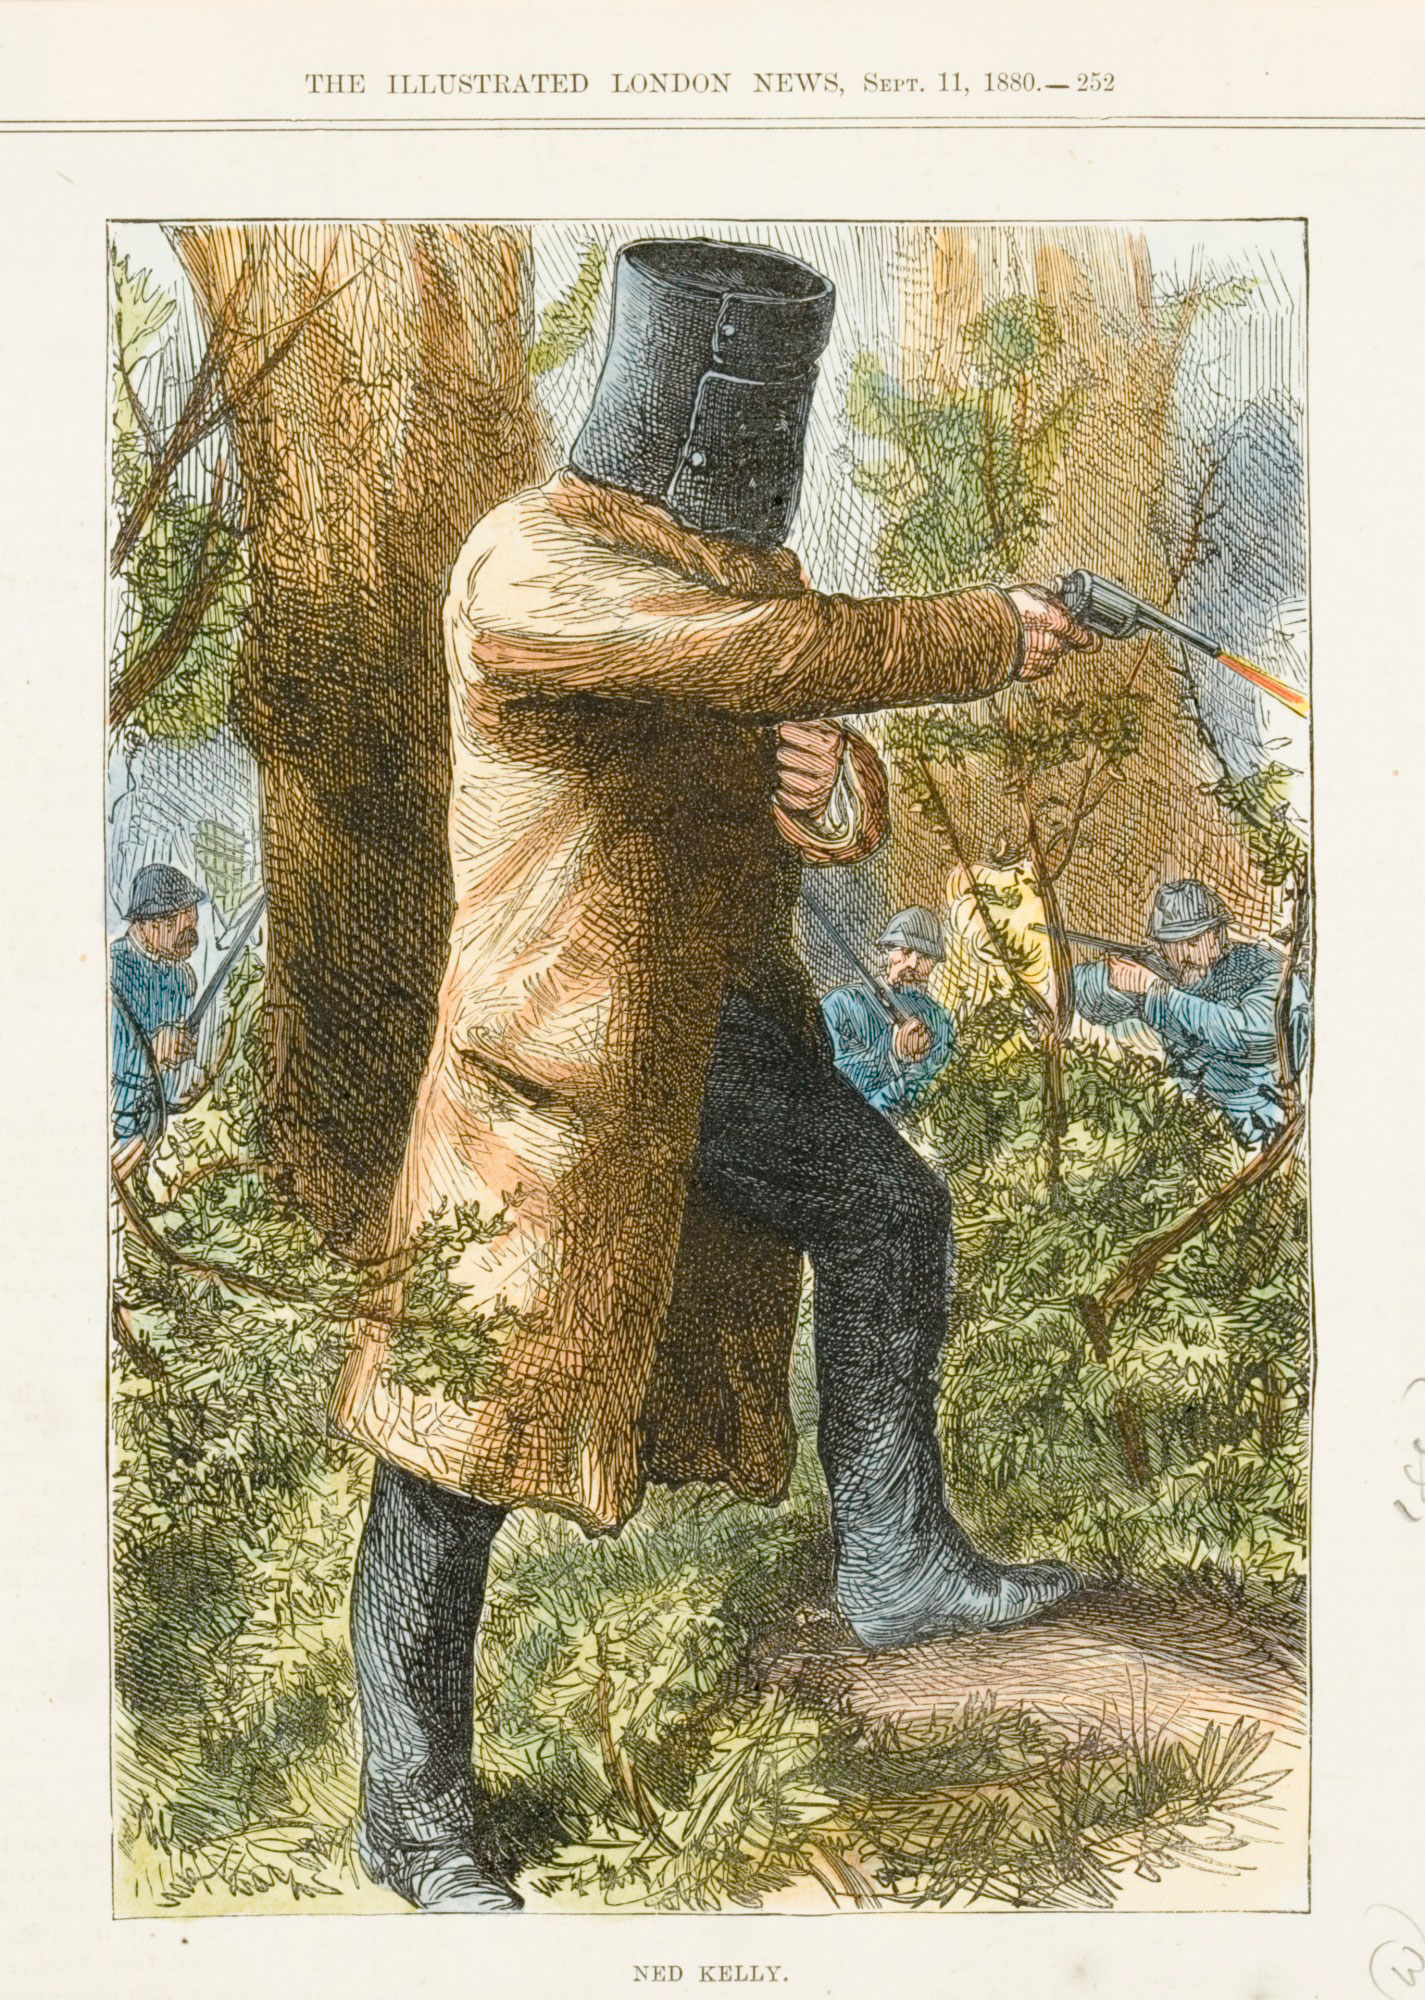 Woodcut of Ned Kelly, The Illustrated London News.